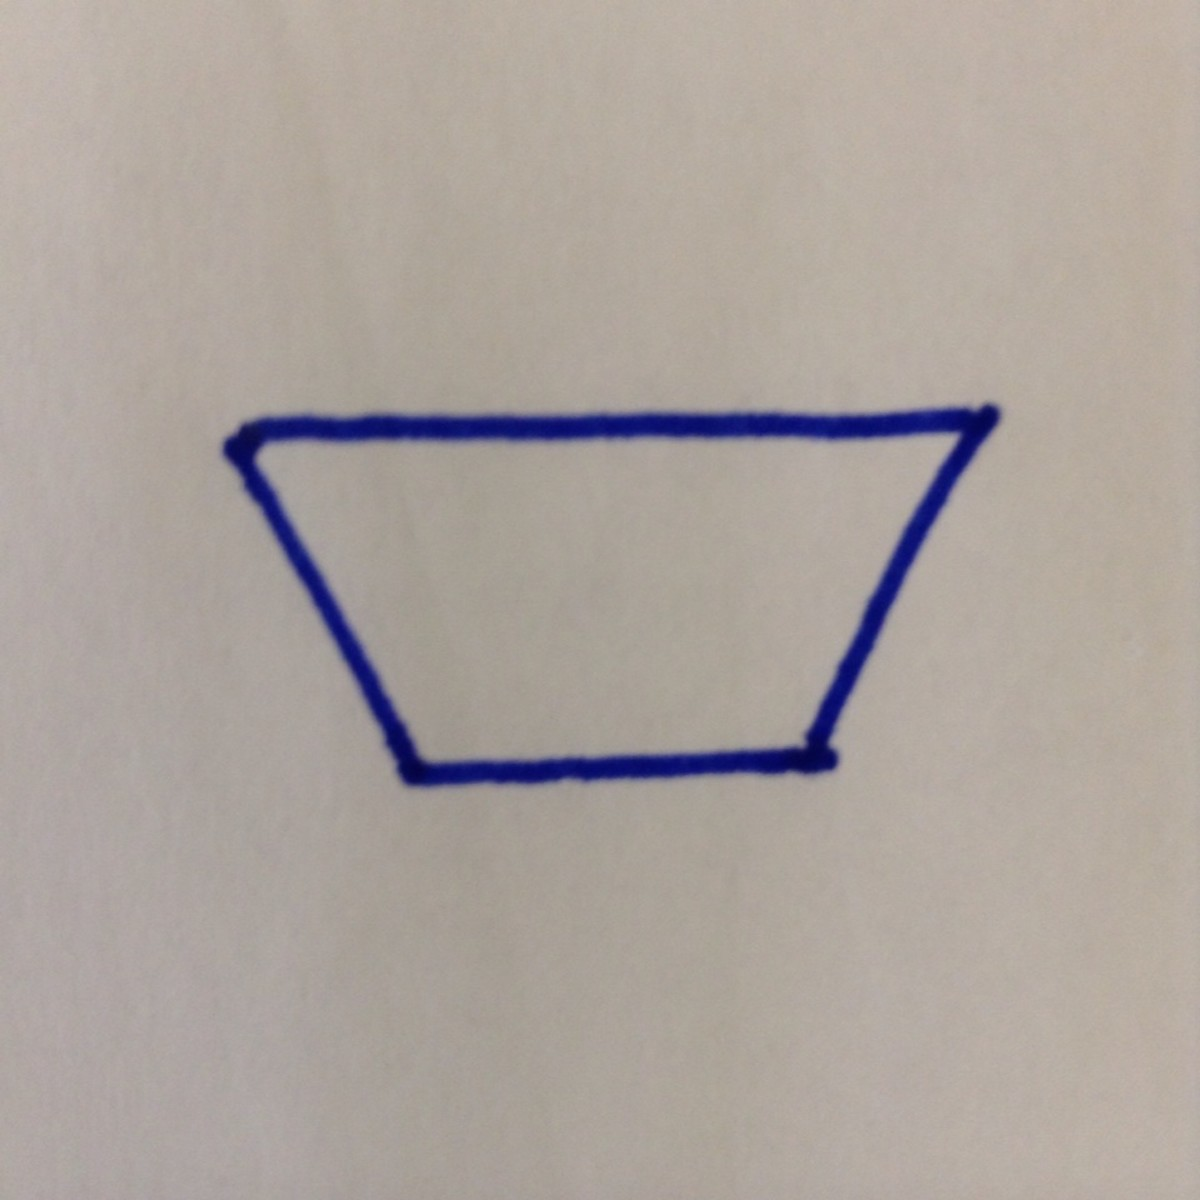 Step 1. Start with a trapezoid.